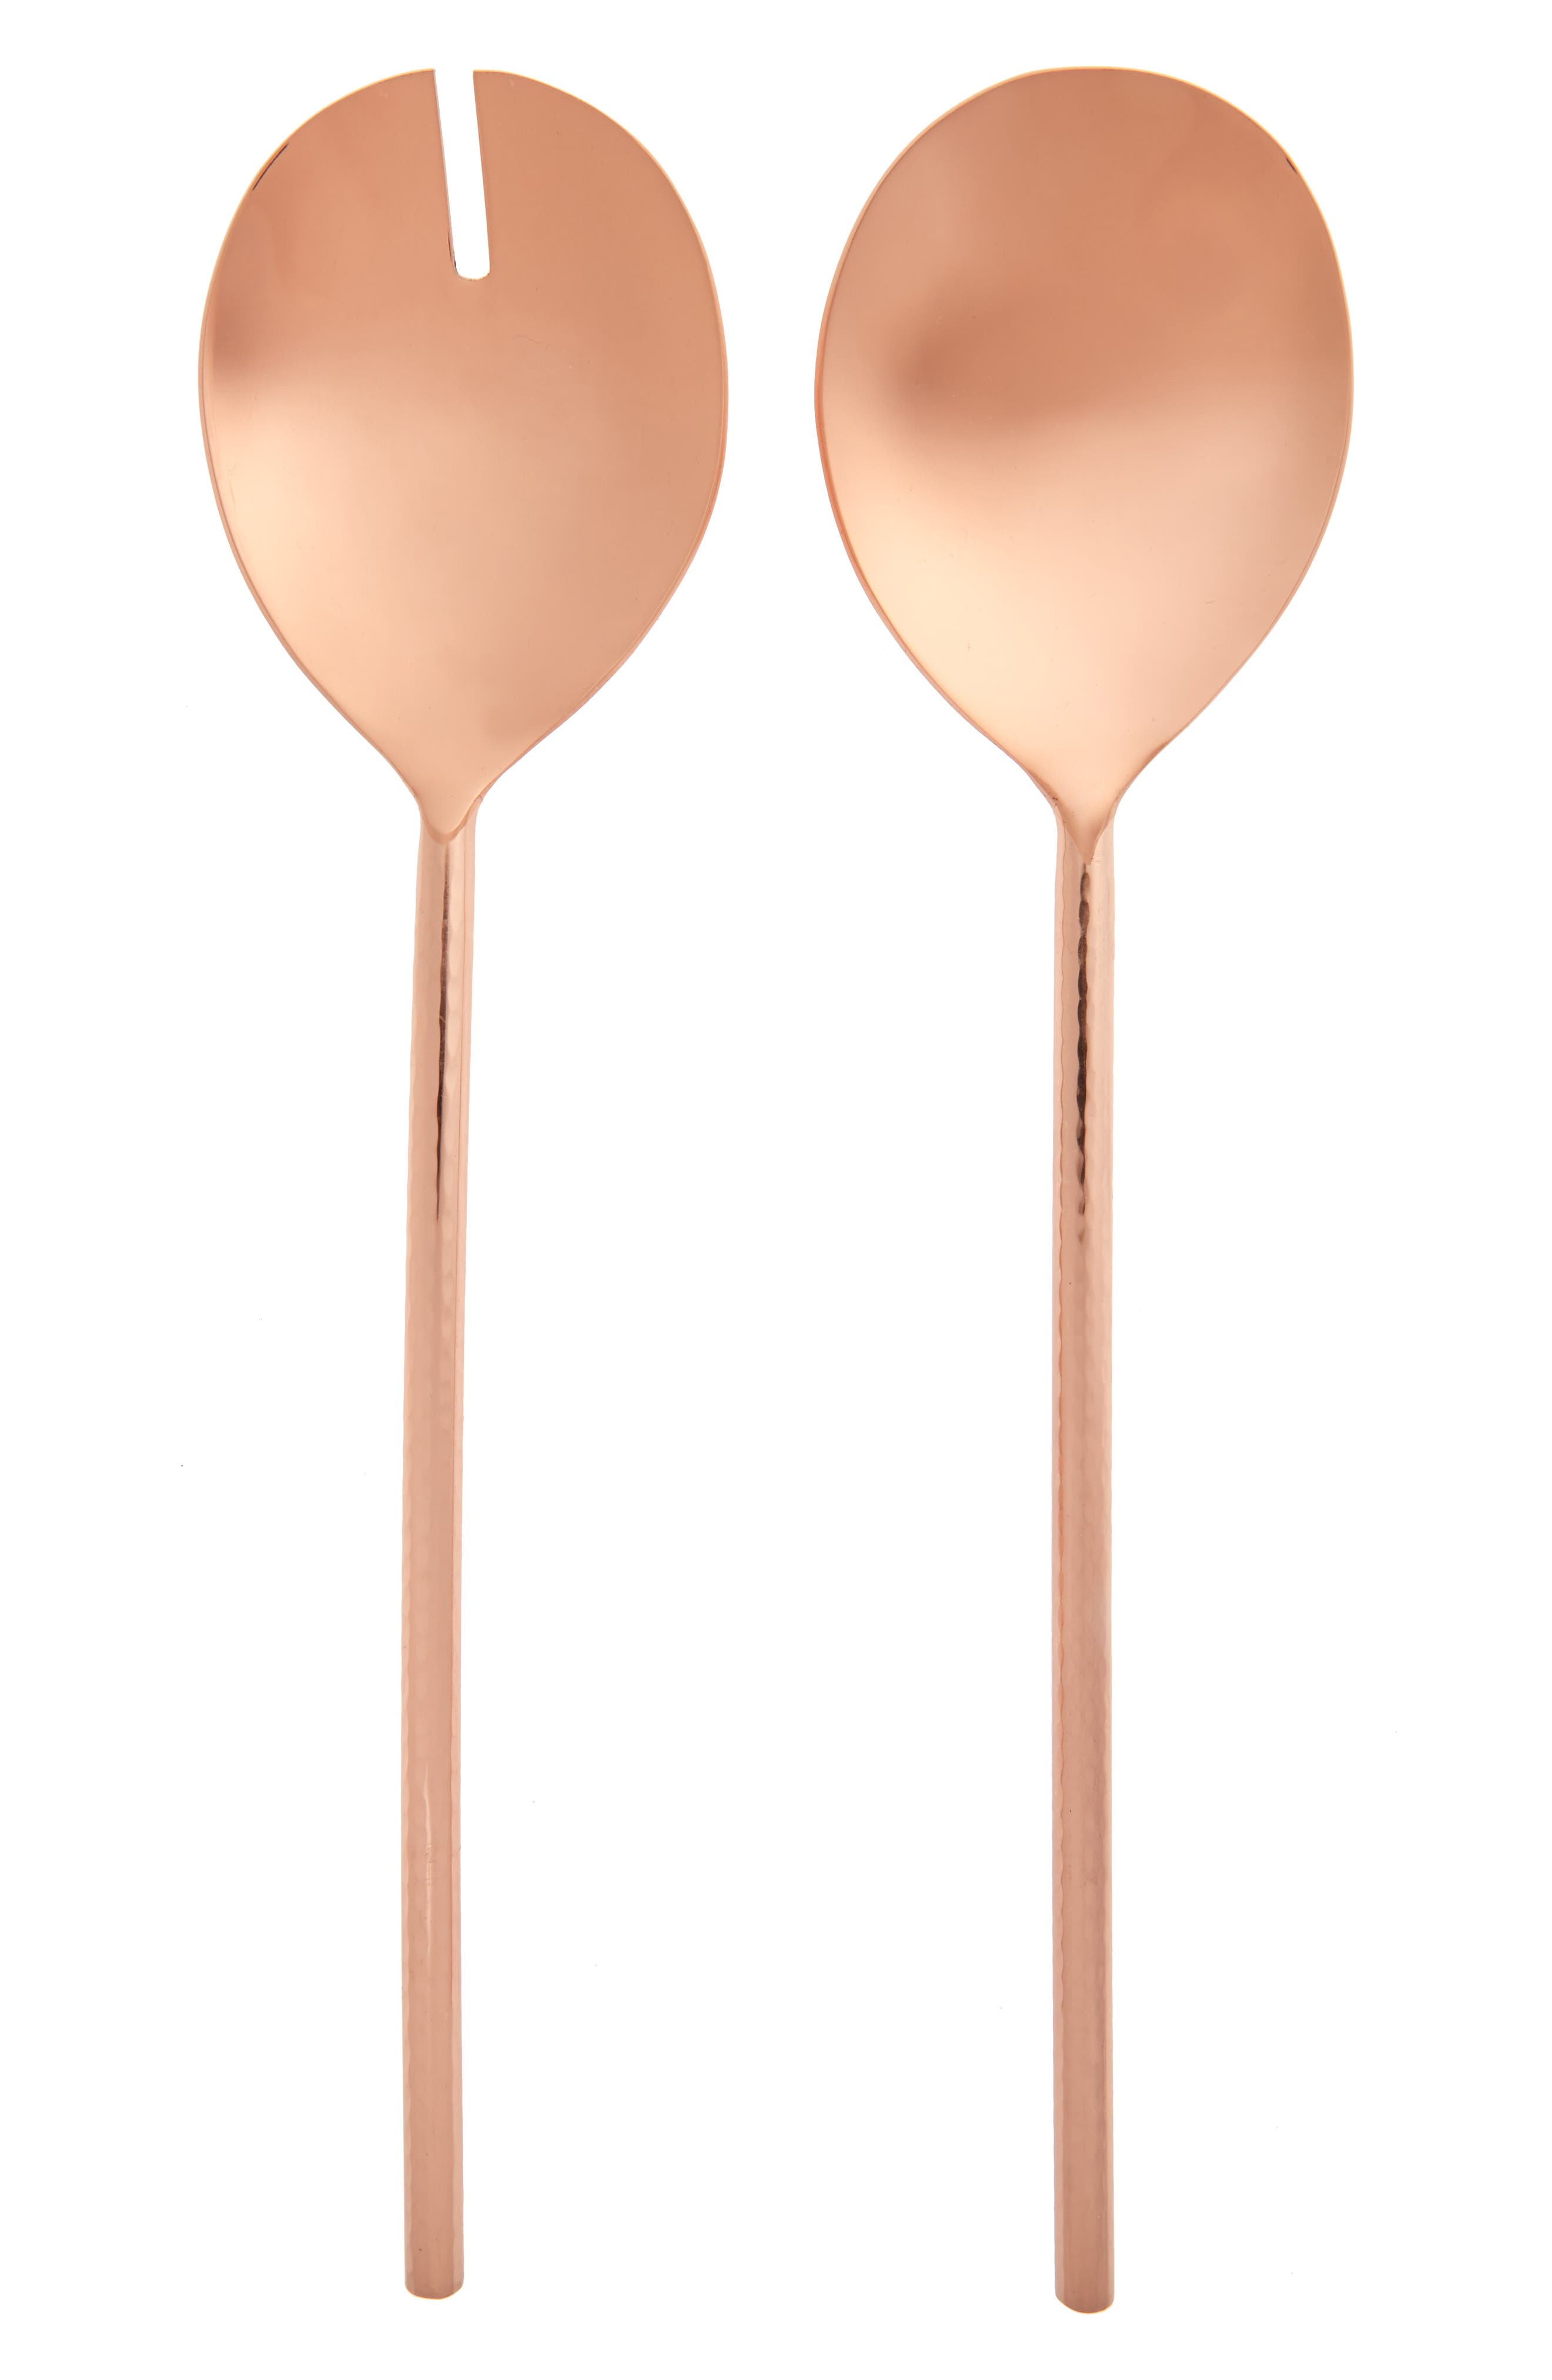 Global Trek Set of 2 Copper Plated Salad Servers,                             Main thumbnail 1, color,                             220